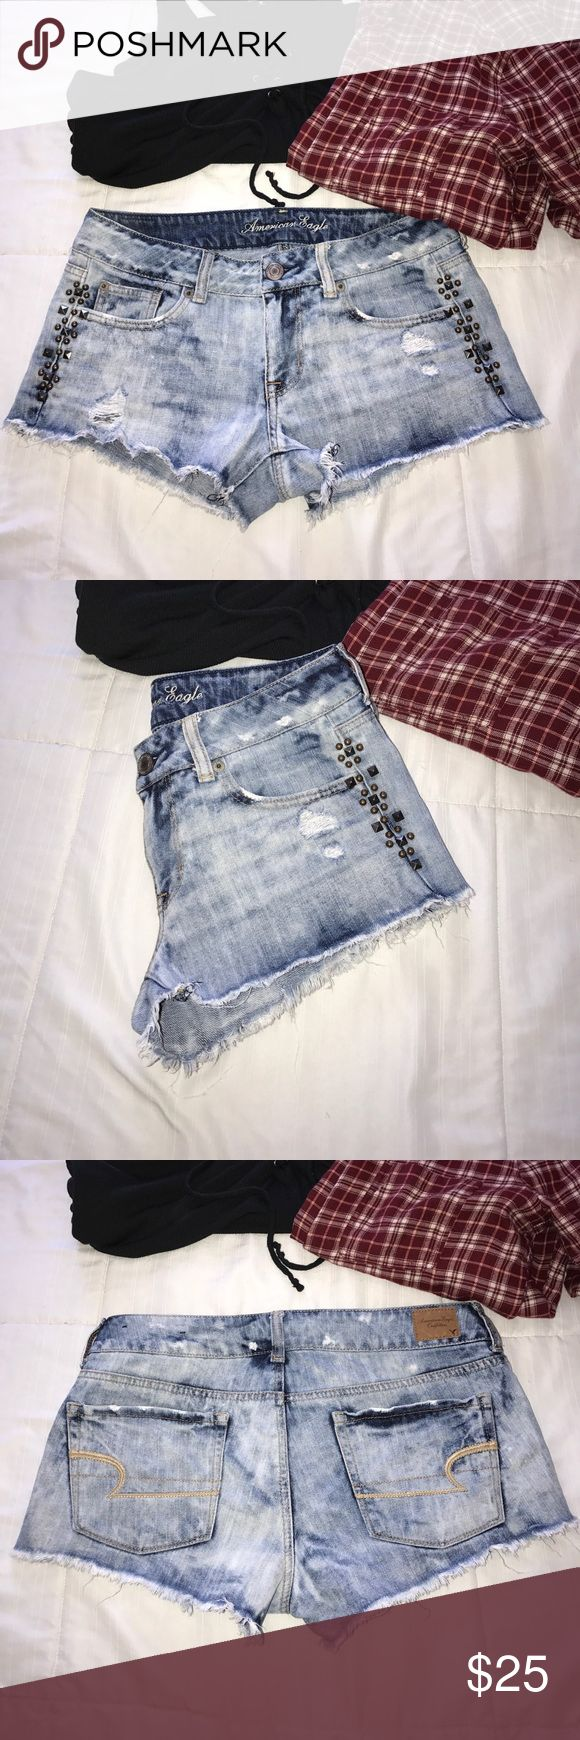 American Eagle Shorts American Eagle Shorts, size 4. In perfect condition, like new. Purchased from another posher, hopeful they'd fit me, but didn't 😭 I love these shorts! Studs are all in tact and there is no damage or stains 🌻 American Eagle Outfitters Shorts Jean Shorts